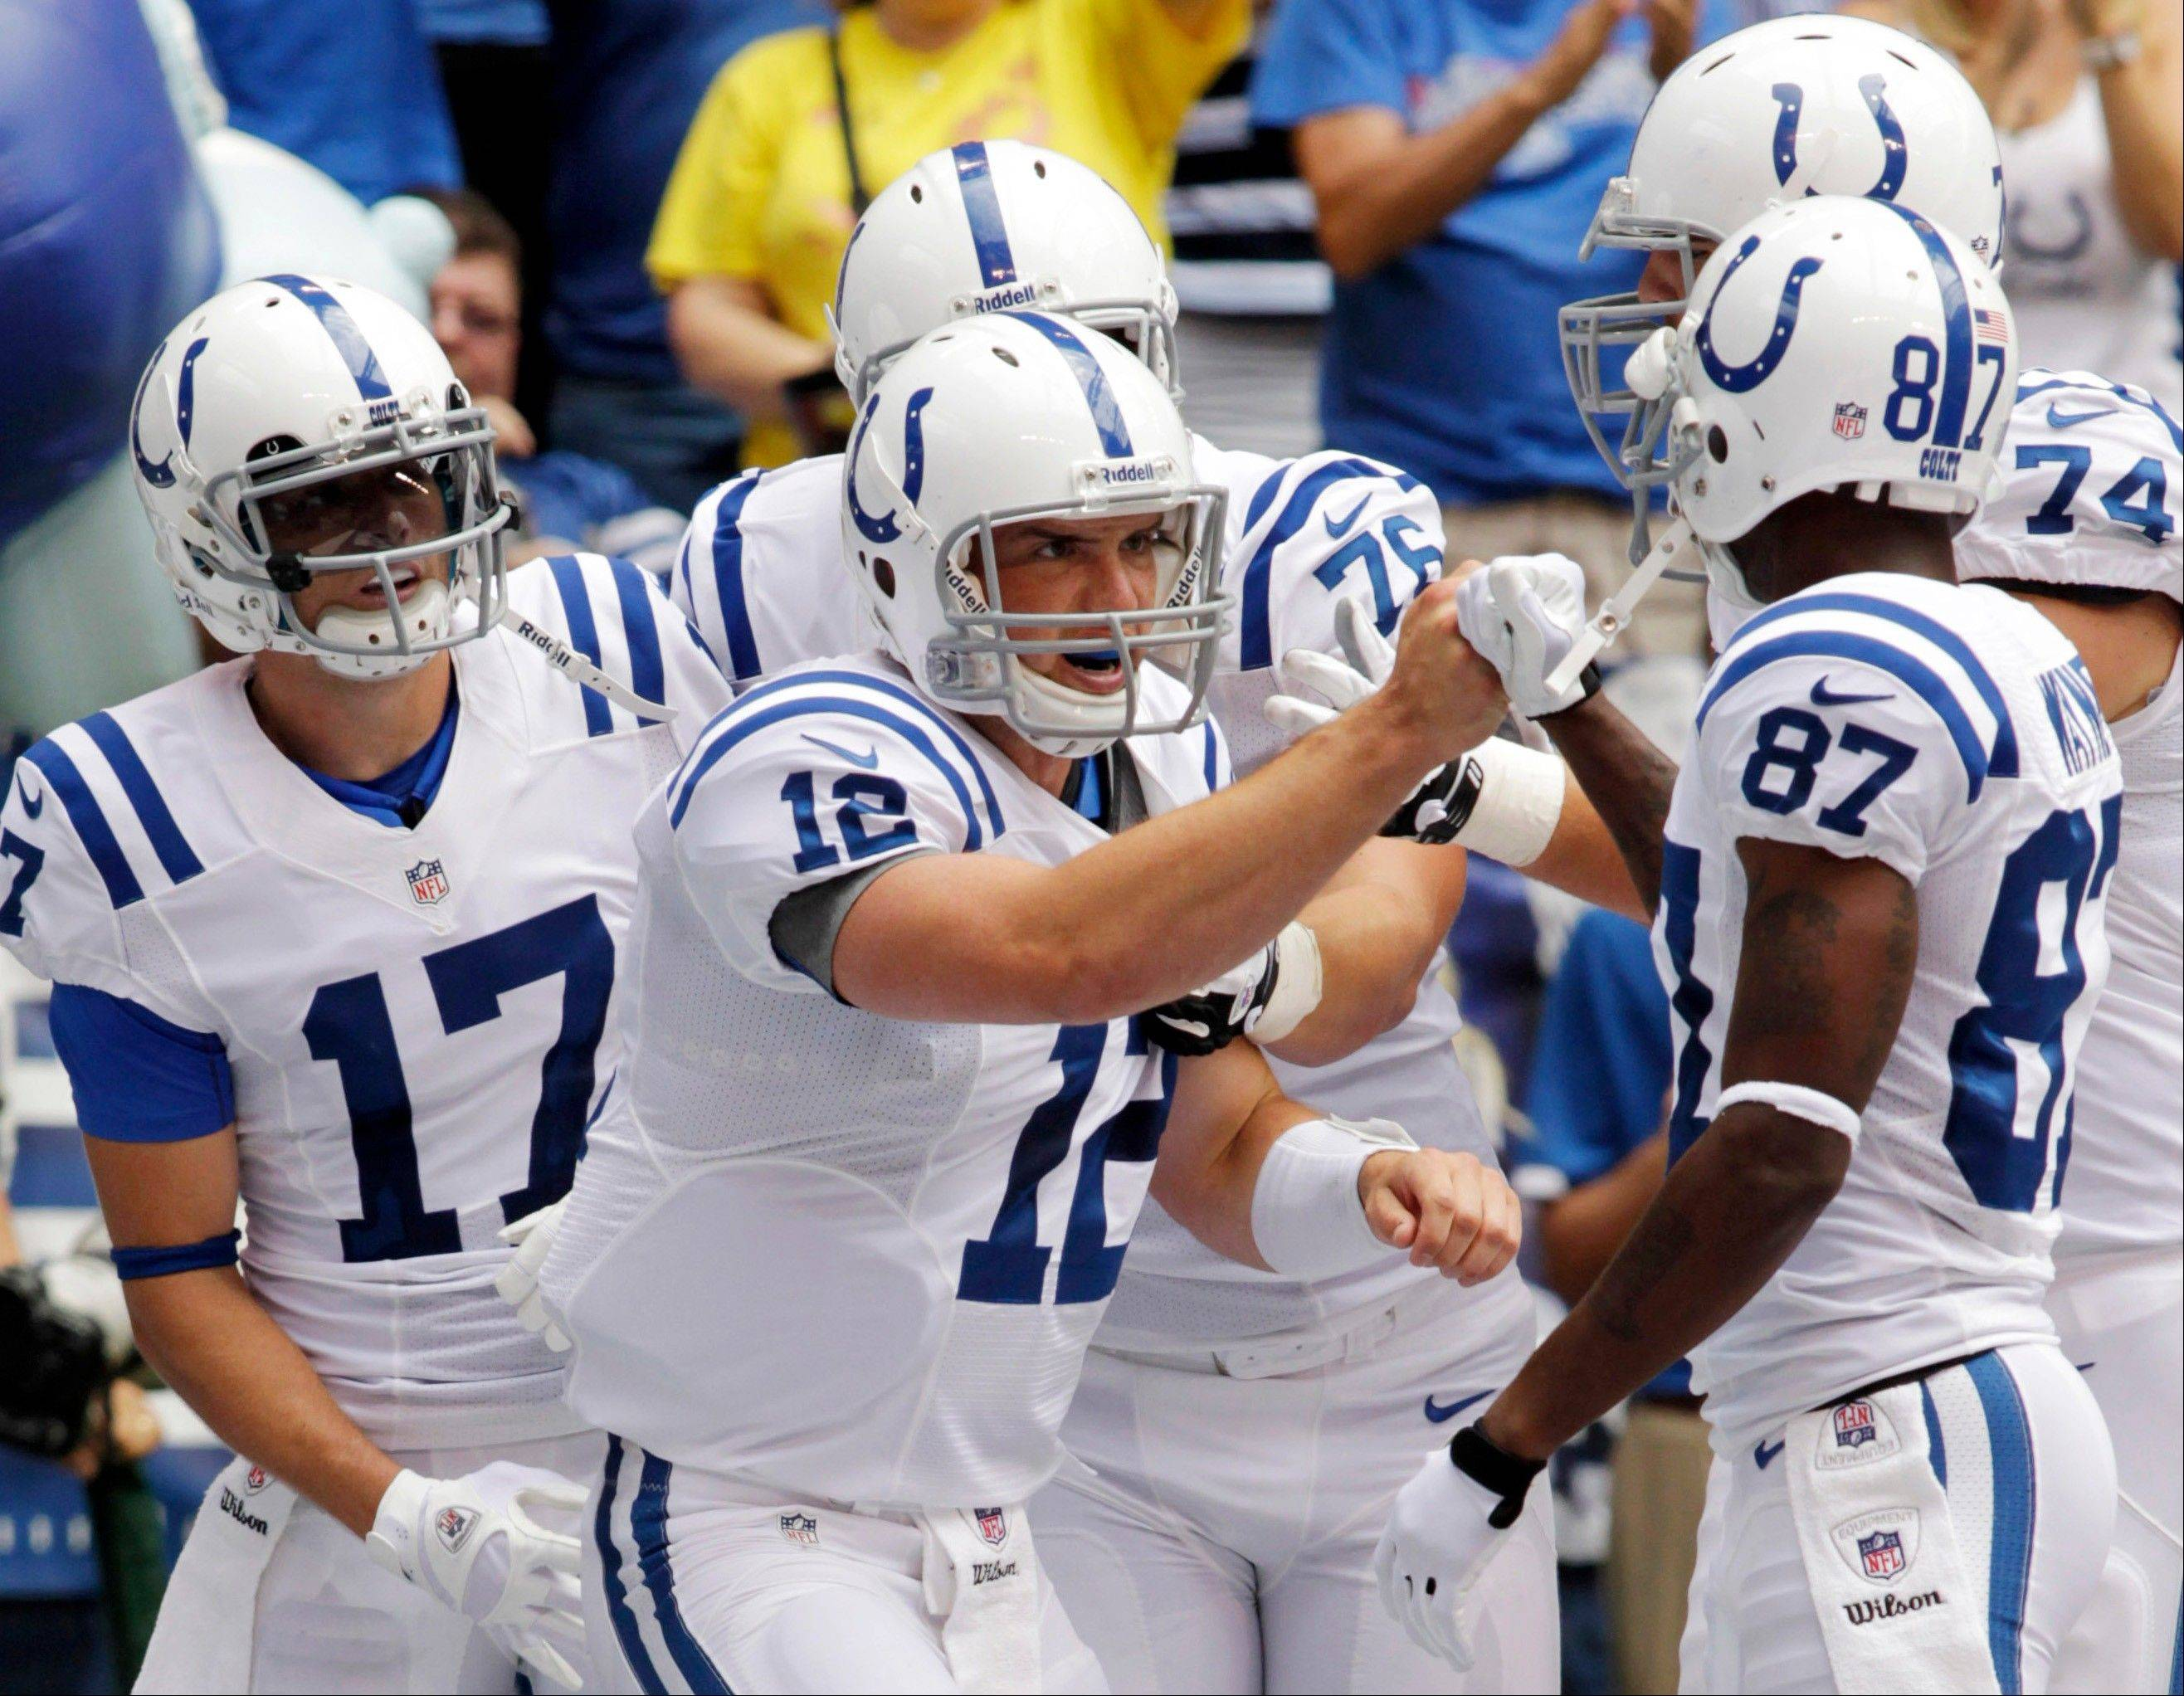 Indianapolis Colts quarterback Andrew Luck (12) celebrates with wide receiver Reggie Wayne (87) after he threw a touchdown pass to wide receiver Austin Collie (17) during a preseason game against the St. Louis Rams. Luck opens the regular season Sunday against the Bears at Soldier Field.